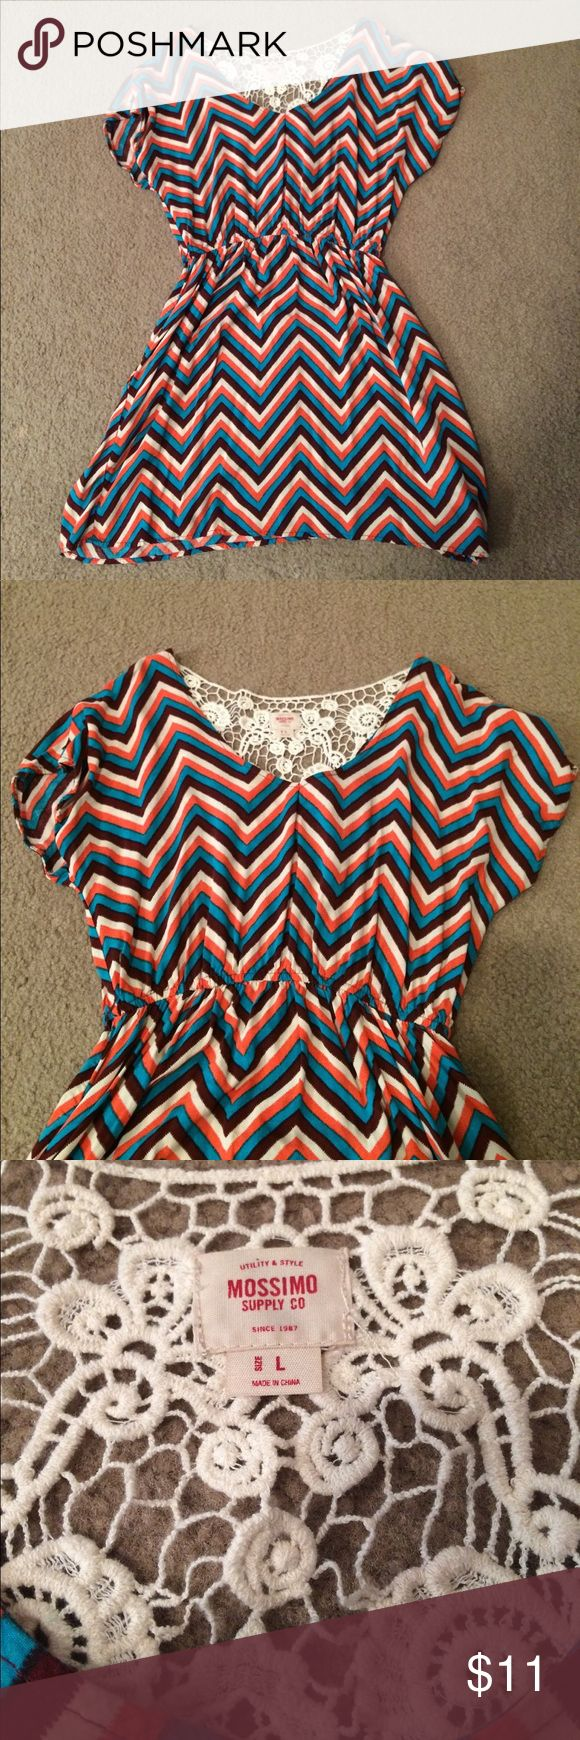 """$6 chevron print dress Euc! ✔The price in the beginning of the title of my listings is the bundle price. These prices are valid through the """"make an offer"""" feature after you create a bundle. These bundle orders must be over $15. Ask me about more details if interested.  ❌No trades ❌No holds Mossimo Supply Co Dresses"""